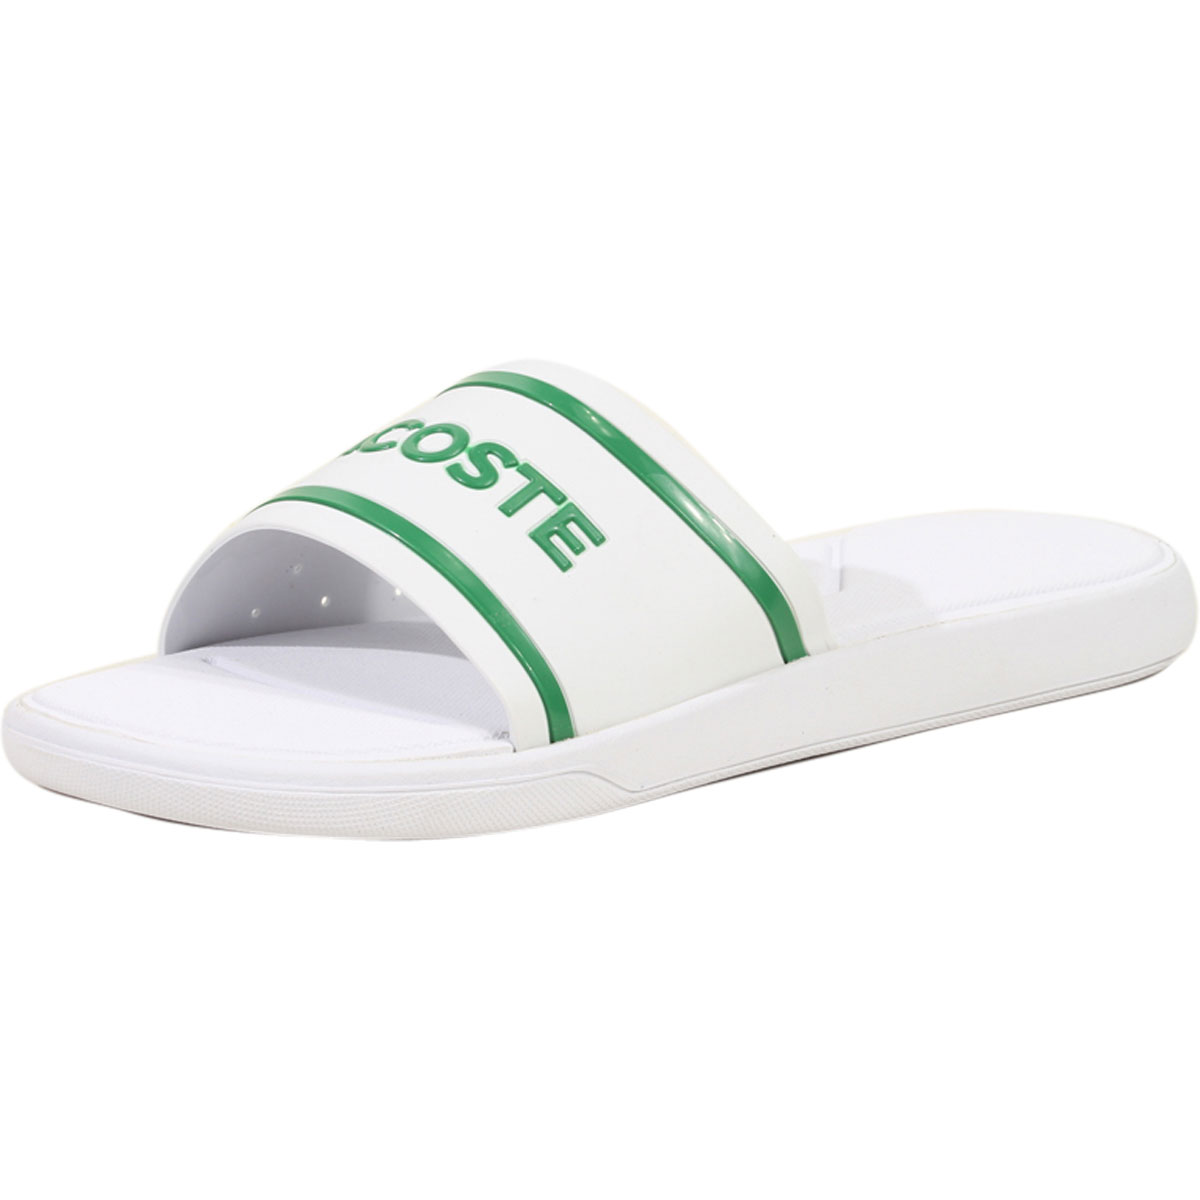 88179712d51aee Lacoste Men s L.30-Slide-118 Slip-On Sandals Shoes